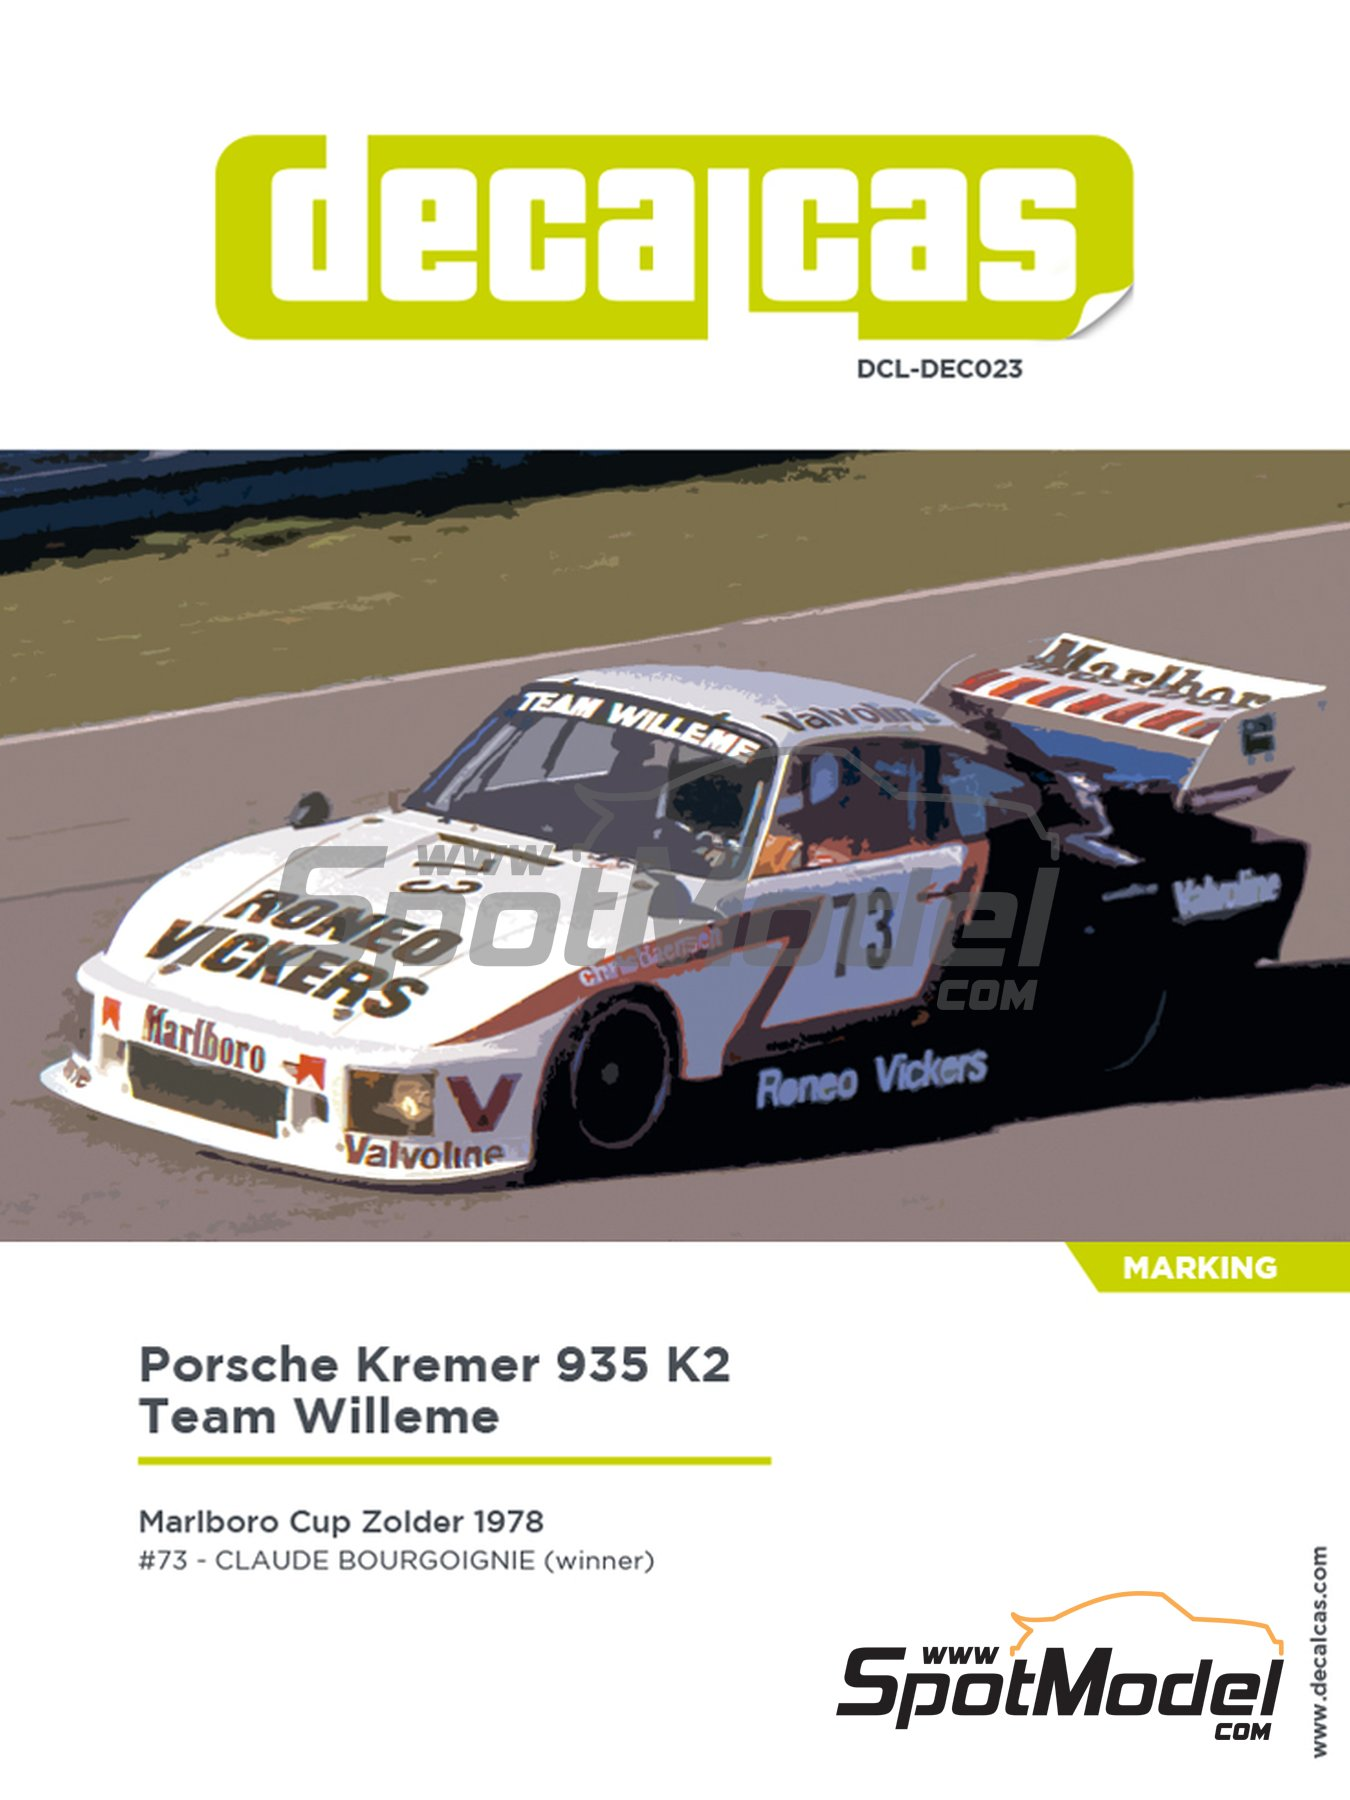 Porsche Kremer 935 K2 Team Willeme - Marlboro Cup Zolder DRM 1978 | Marking / livery in 1/24 scale manufactured by Decalcas (ref. DCL-DEC023) image